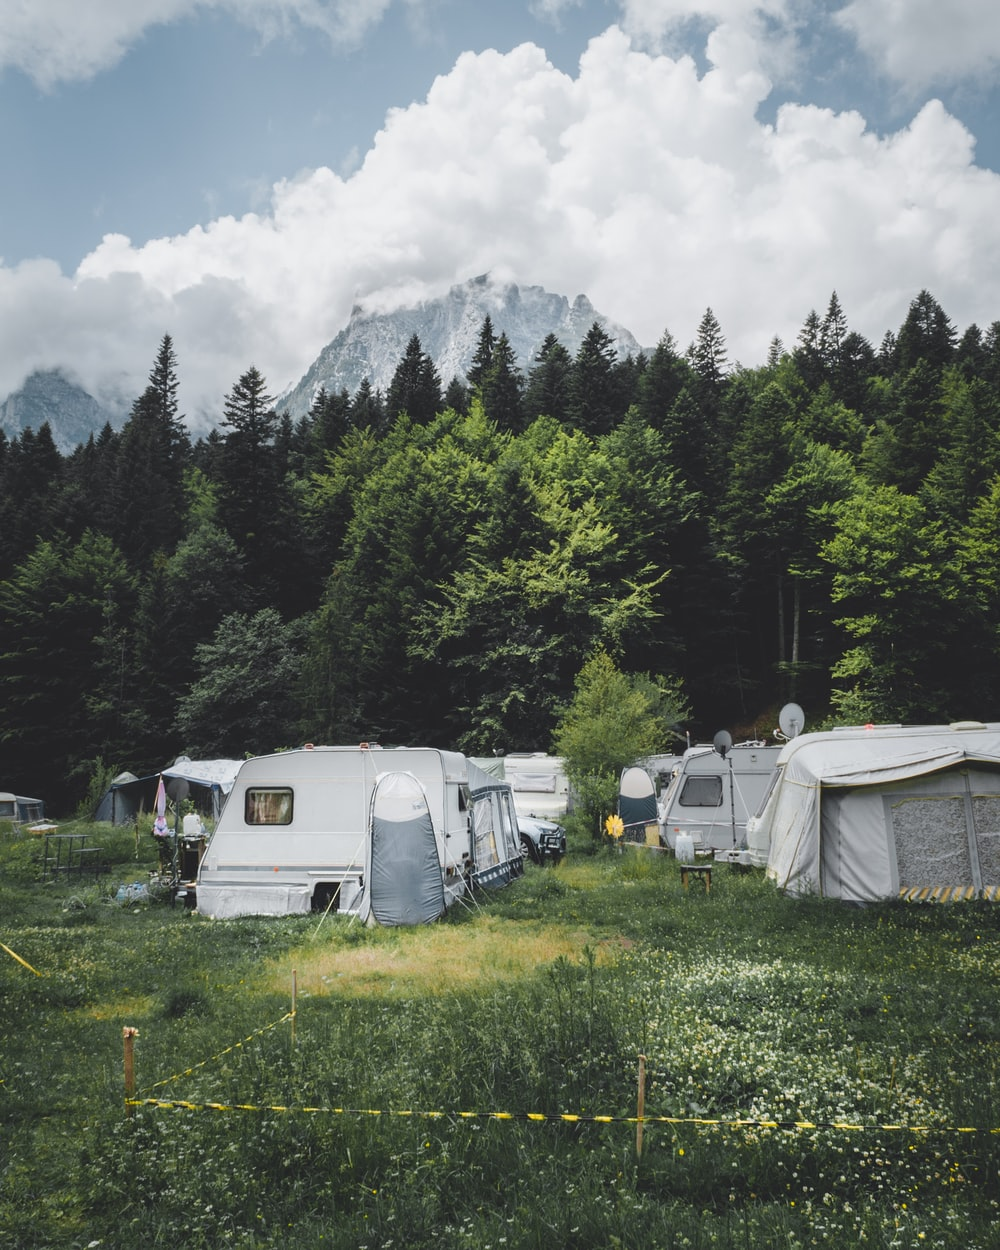 camper trailer near trees with snow-capped mountain at distance